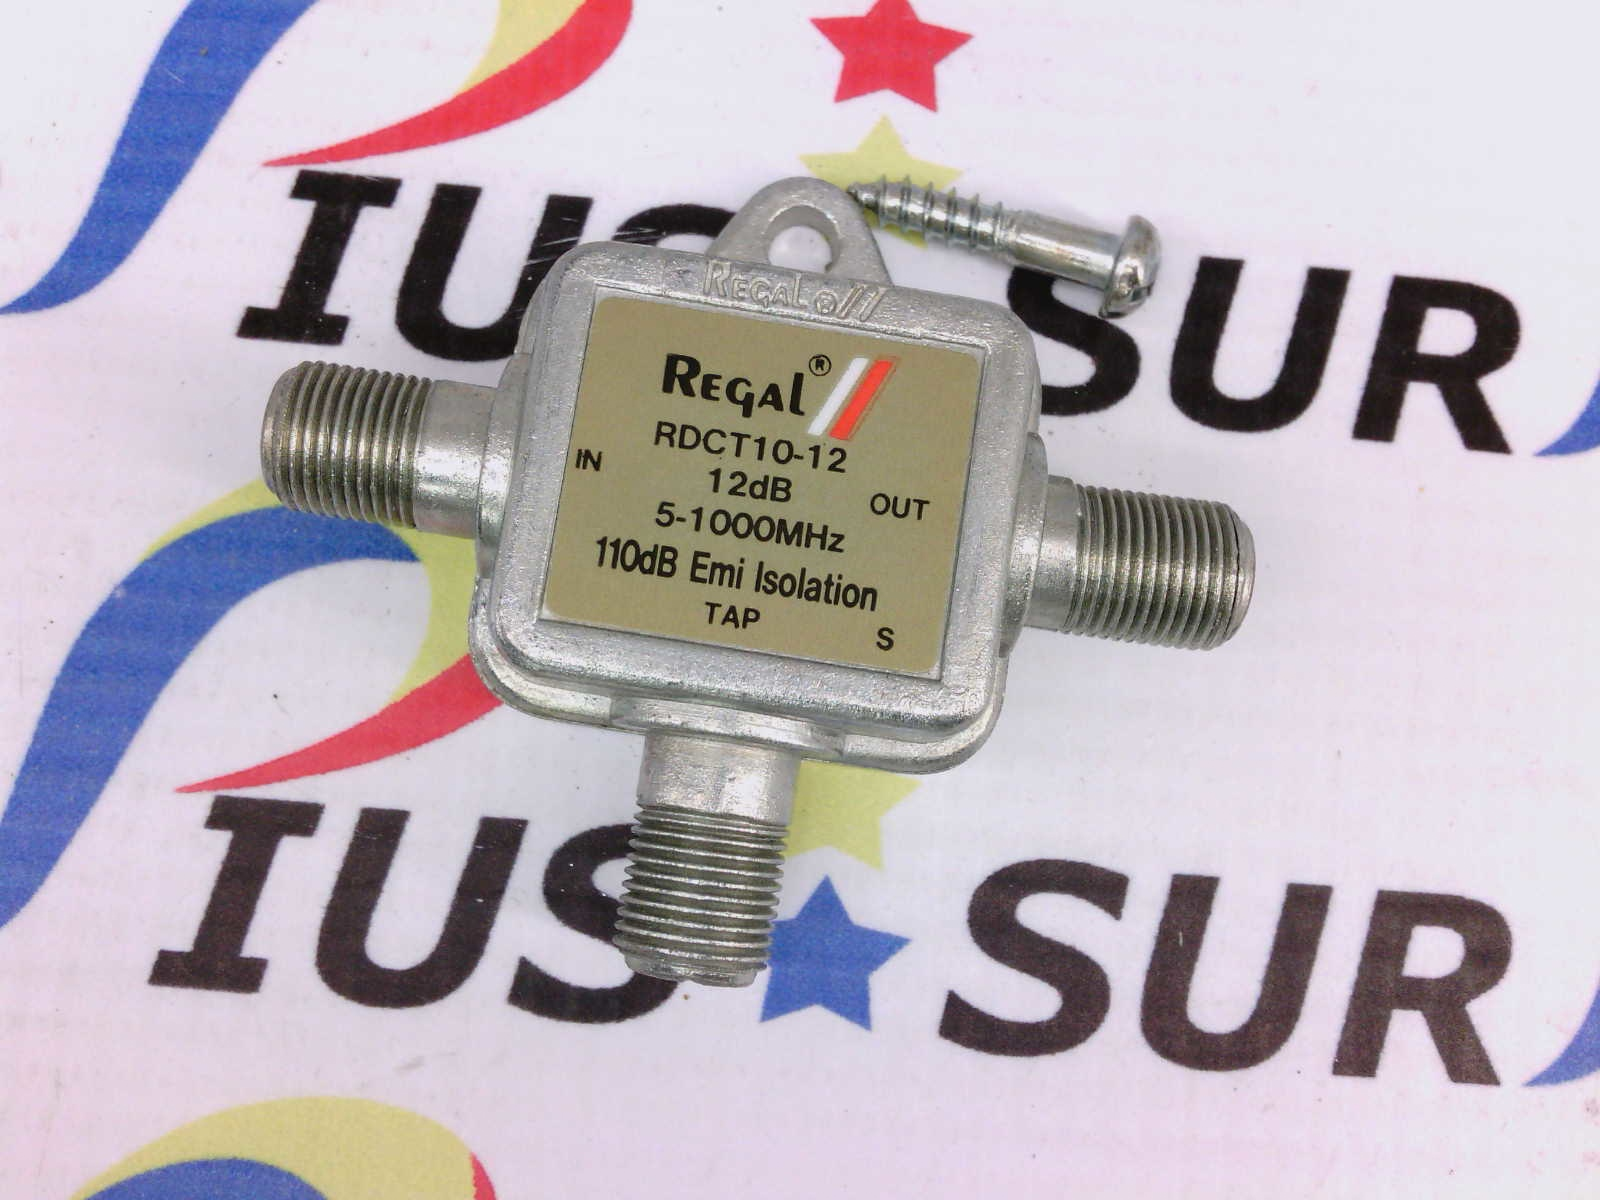 Regal RDCT10-12 Directional Coupler 12 dB 5-1000 MHz Cable/Antenna Splitter